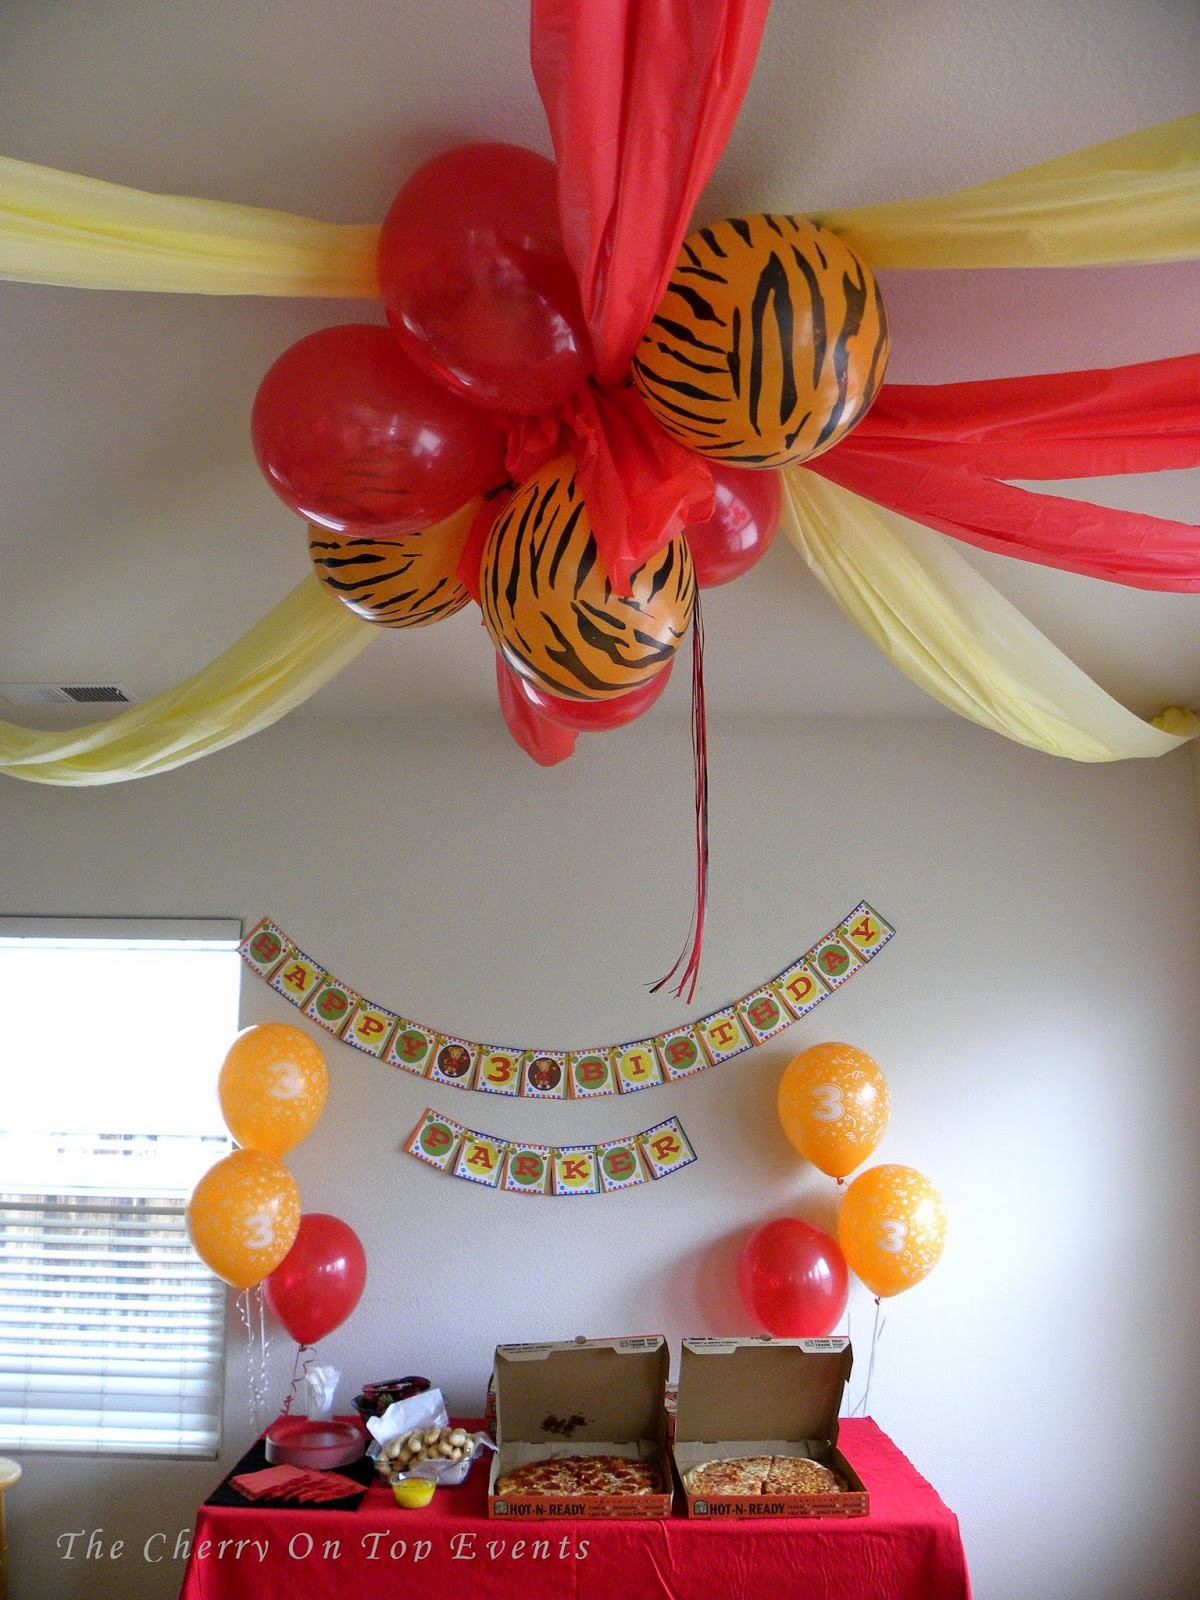 Best ideas about Daniel Tiger Birthday Party . Save or Pin The Cherry Top Events Party Blog A Daniel Tiger s 3rd Now.